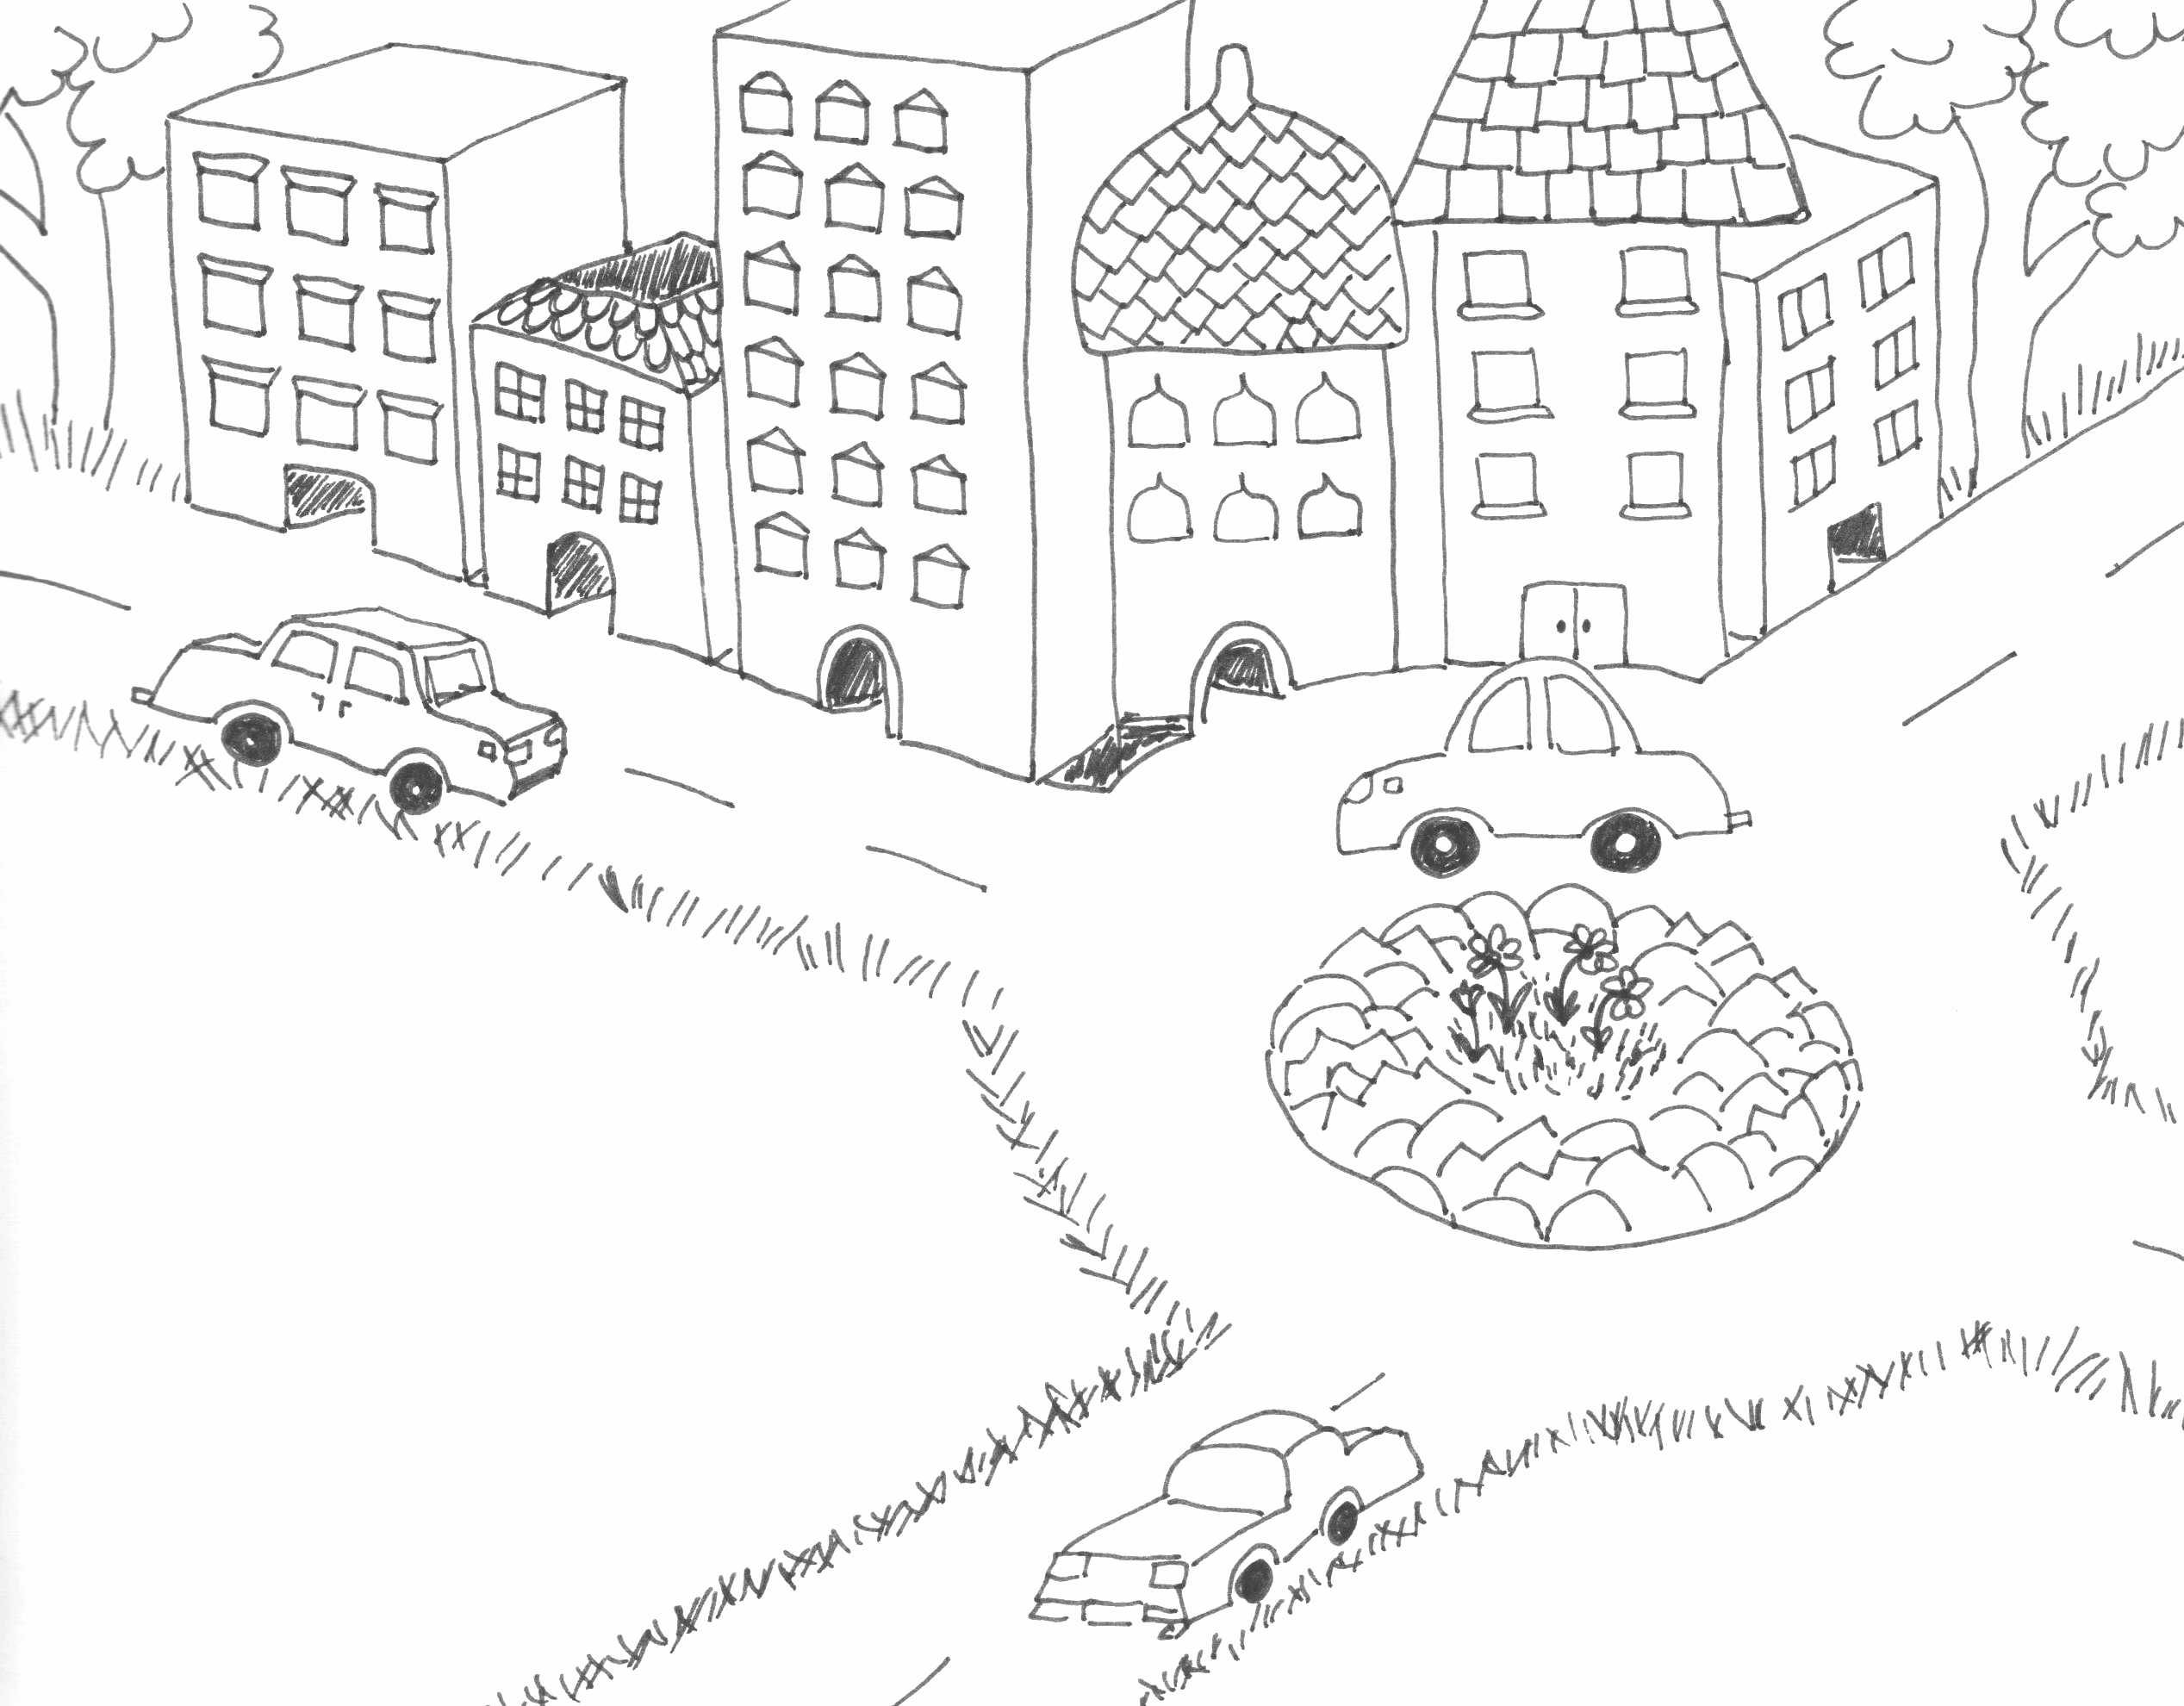 Varos Autokkal Rajz Drawing A Town With Cars Coloring Page Szinezo Coloring Pages Drawings Car Town